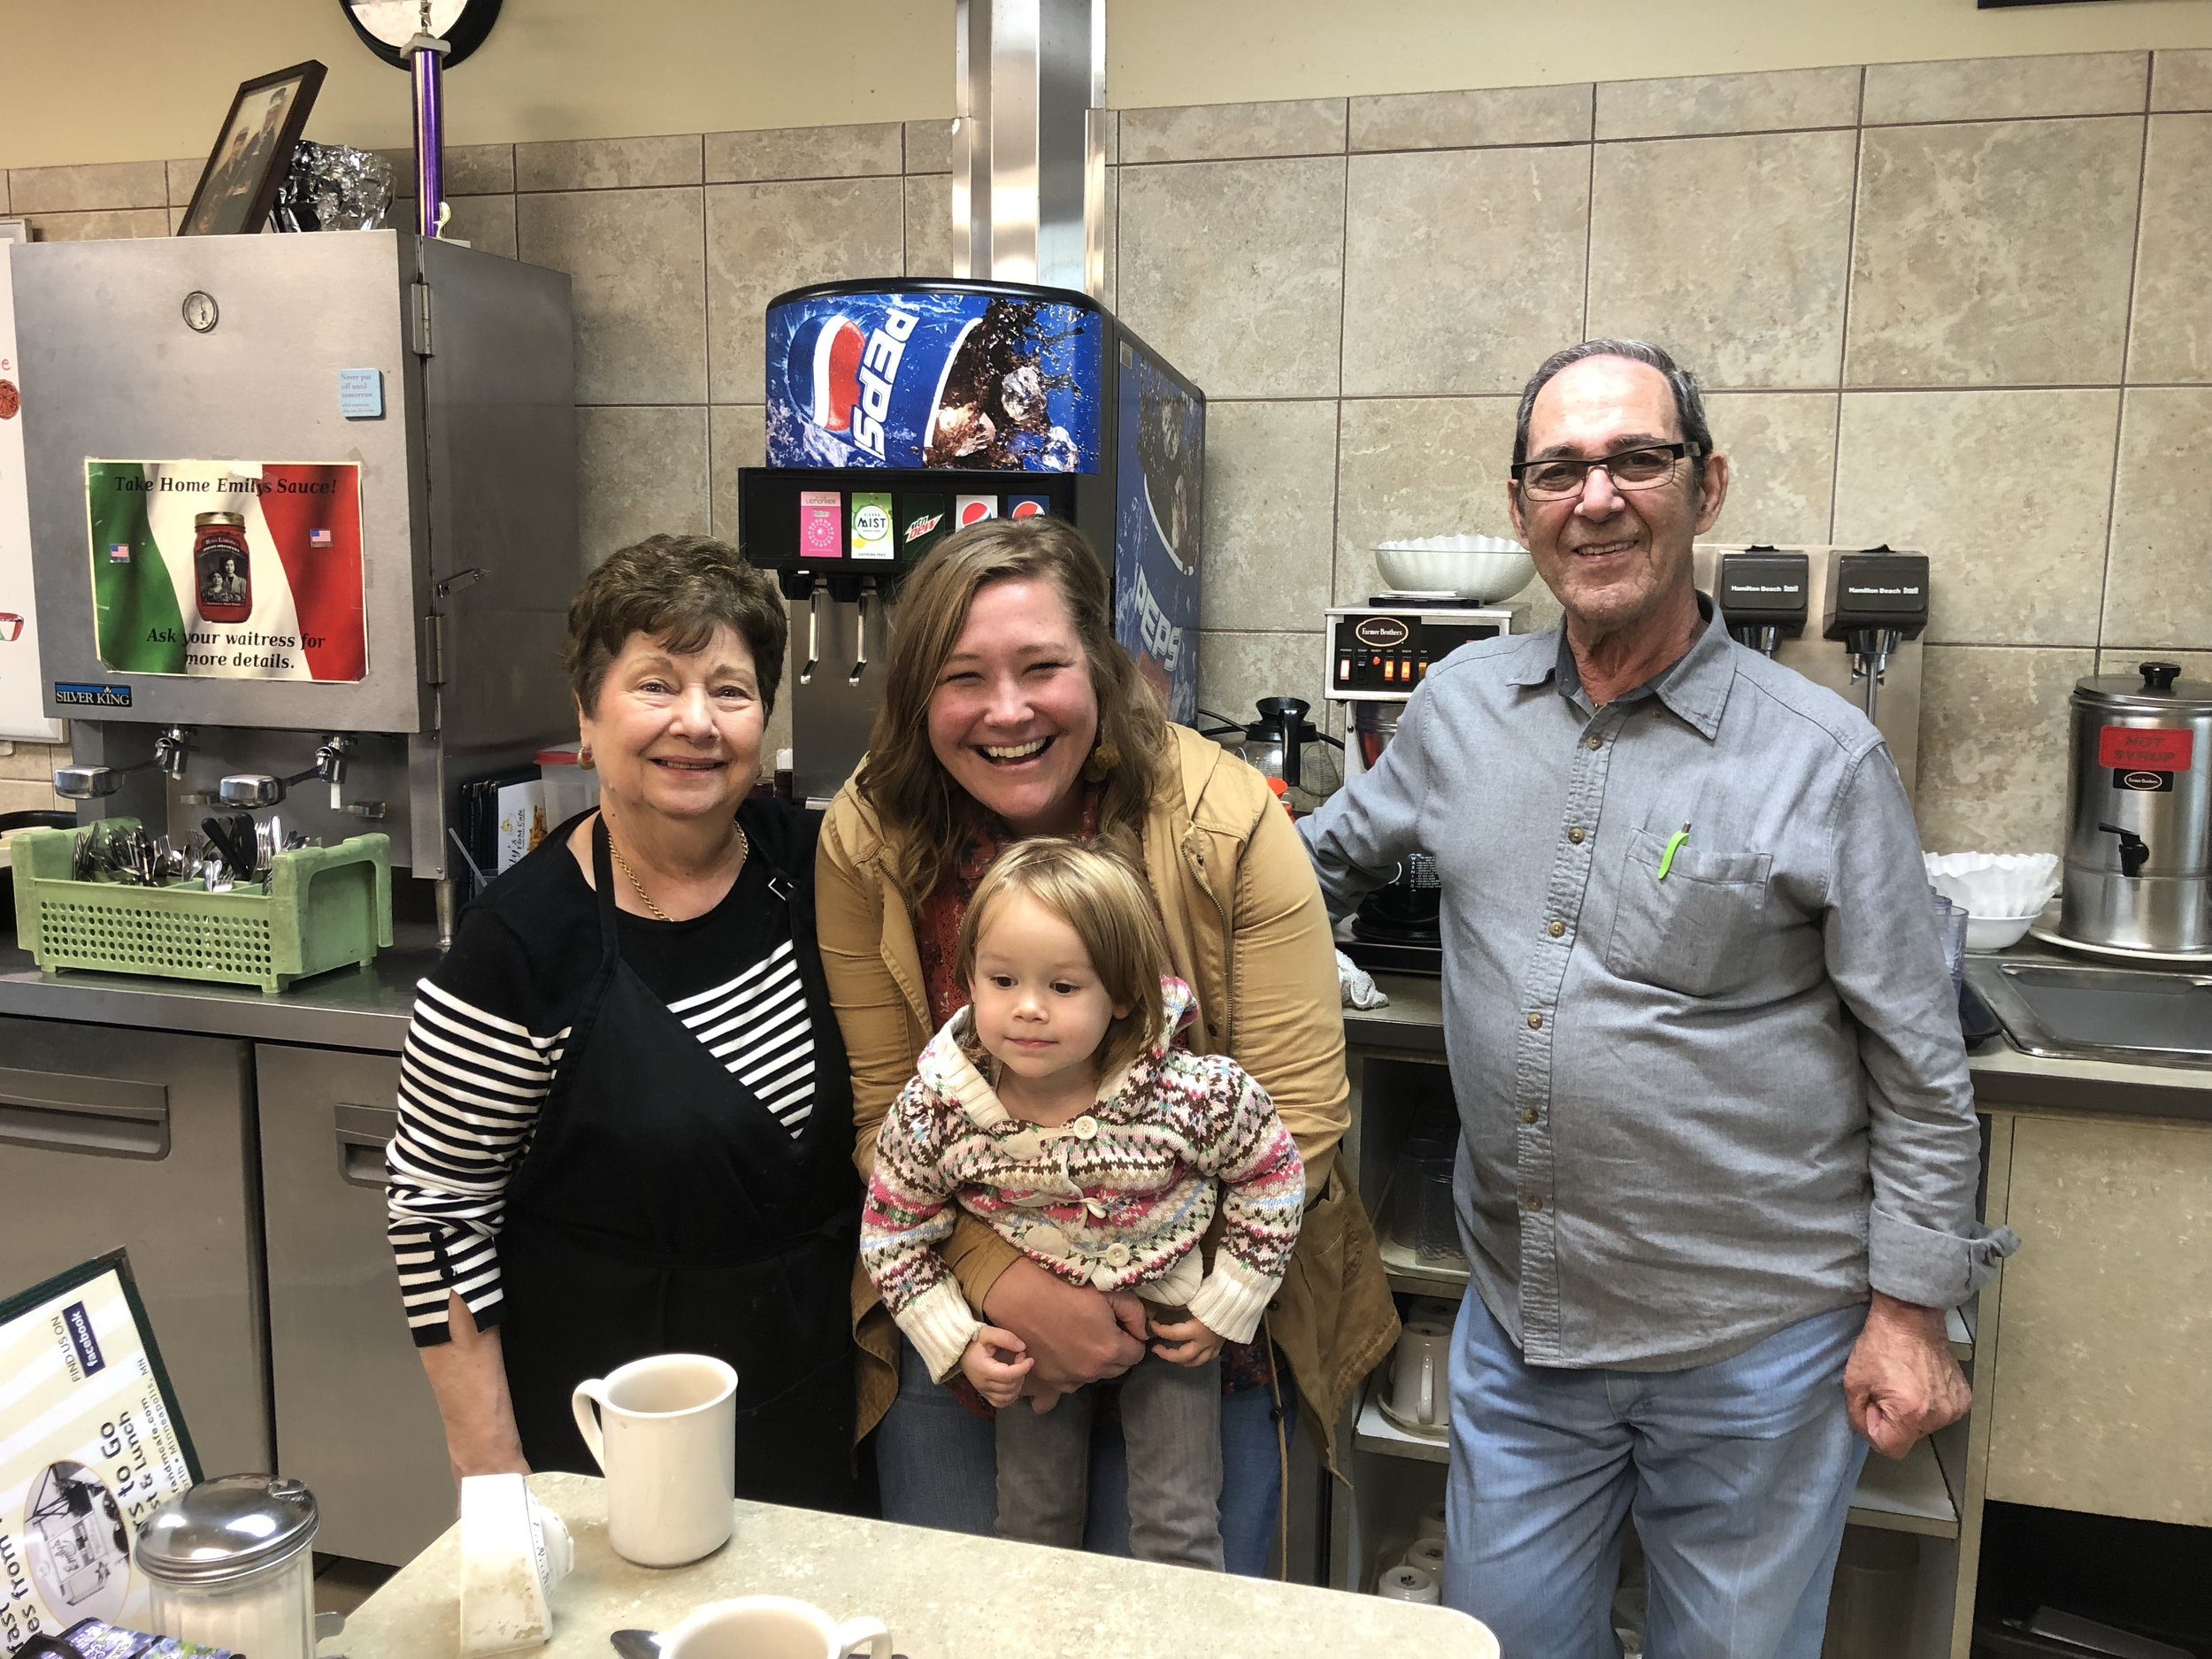 Stephanie Page, alongside her daughter and mother (not pictured here), stopped by Emily's F & M Cafe to meet and meet with cafe owners Emily and Elliot Sr. Benincasa.  Photo by Sherrill Thurston.